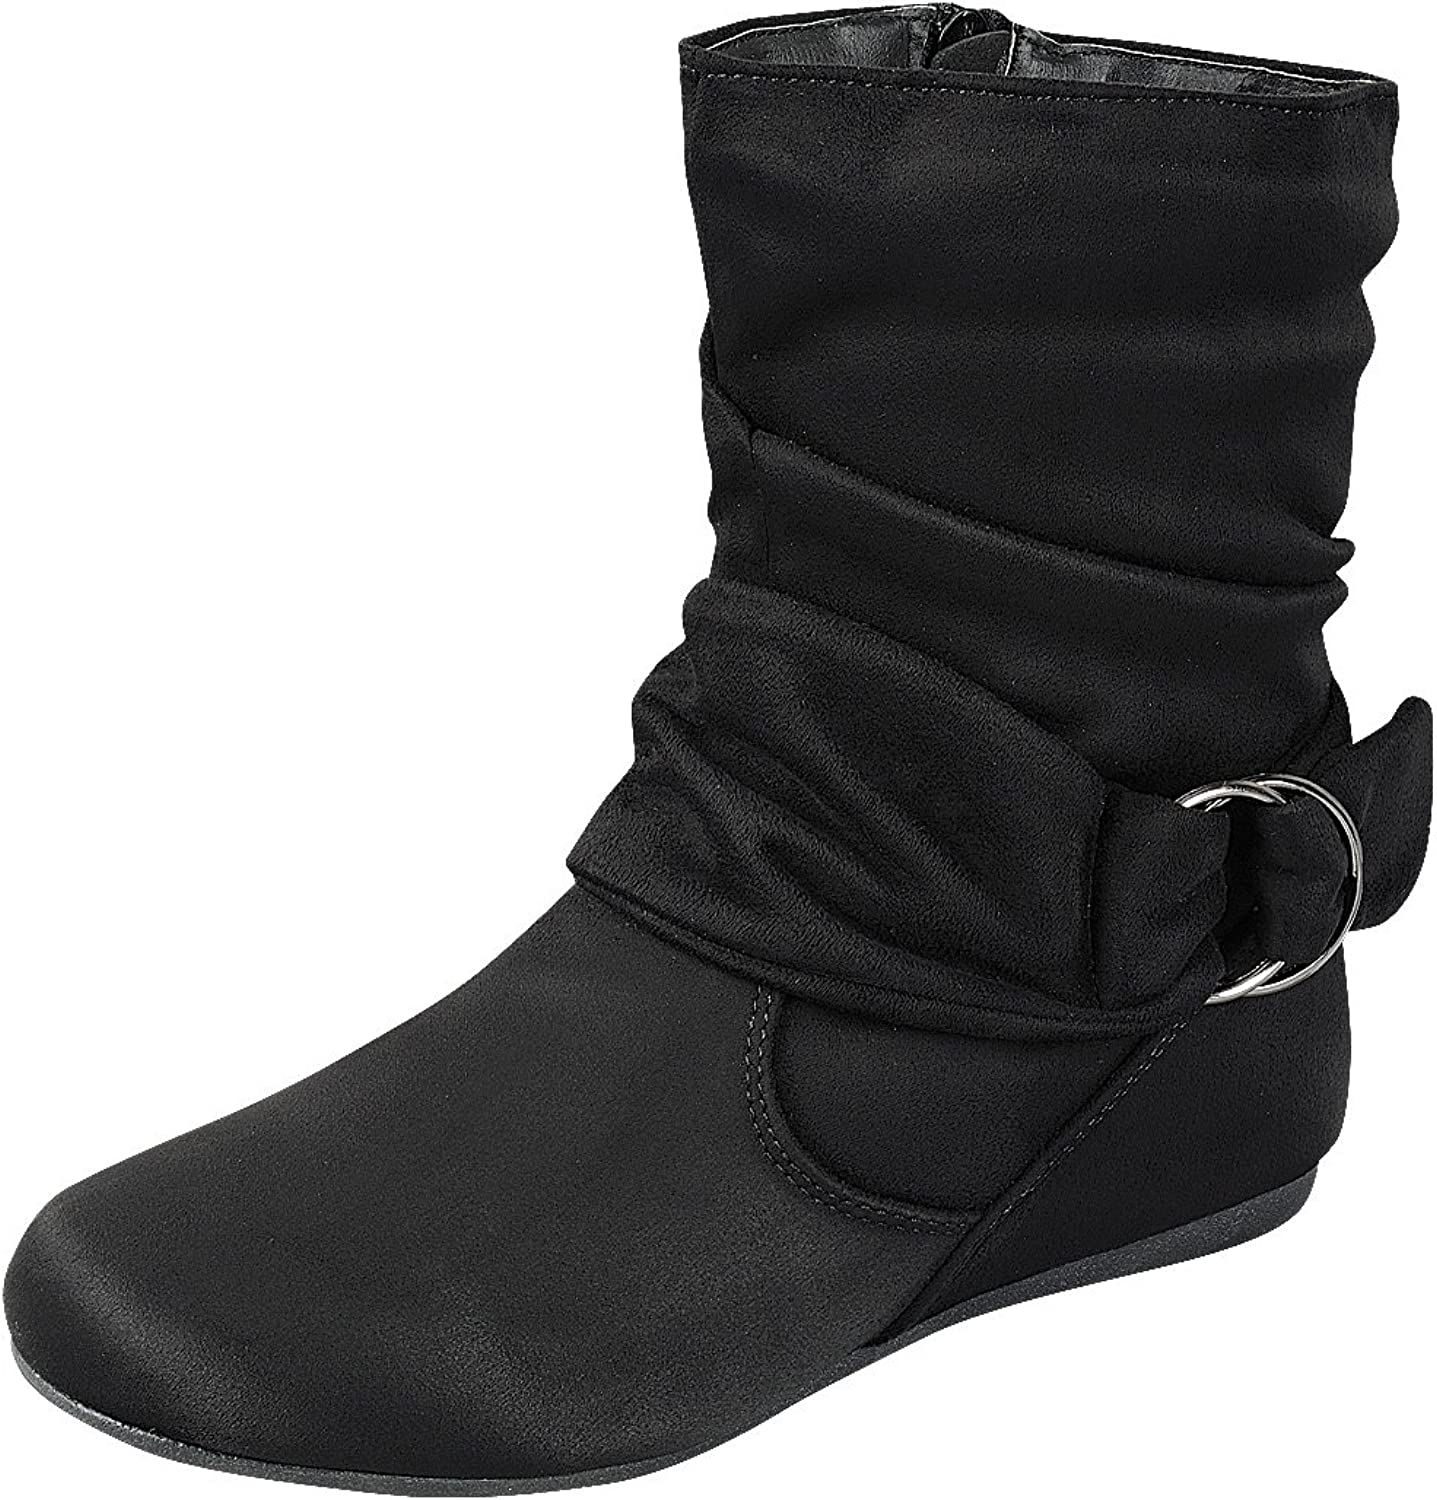 Cambridge Select Women's Slouch Closed Round Toe Flat Heel Mid-Calf Boot